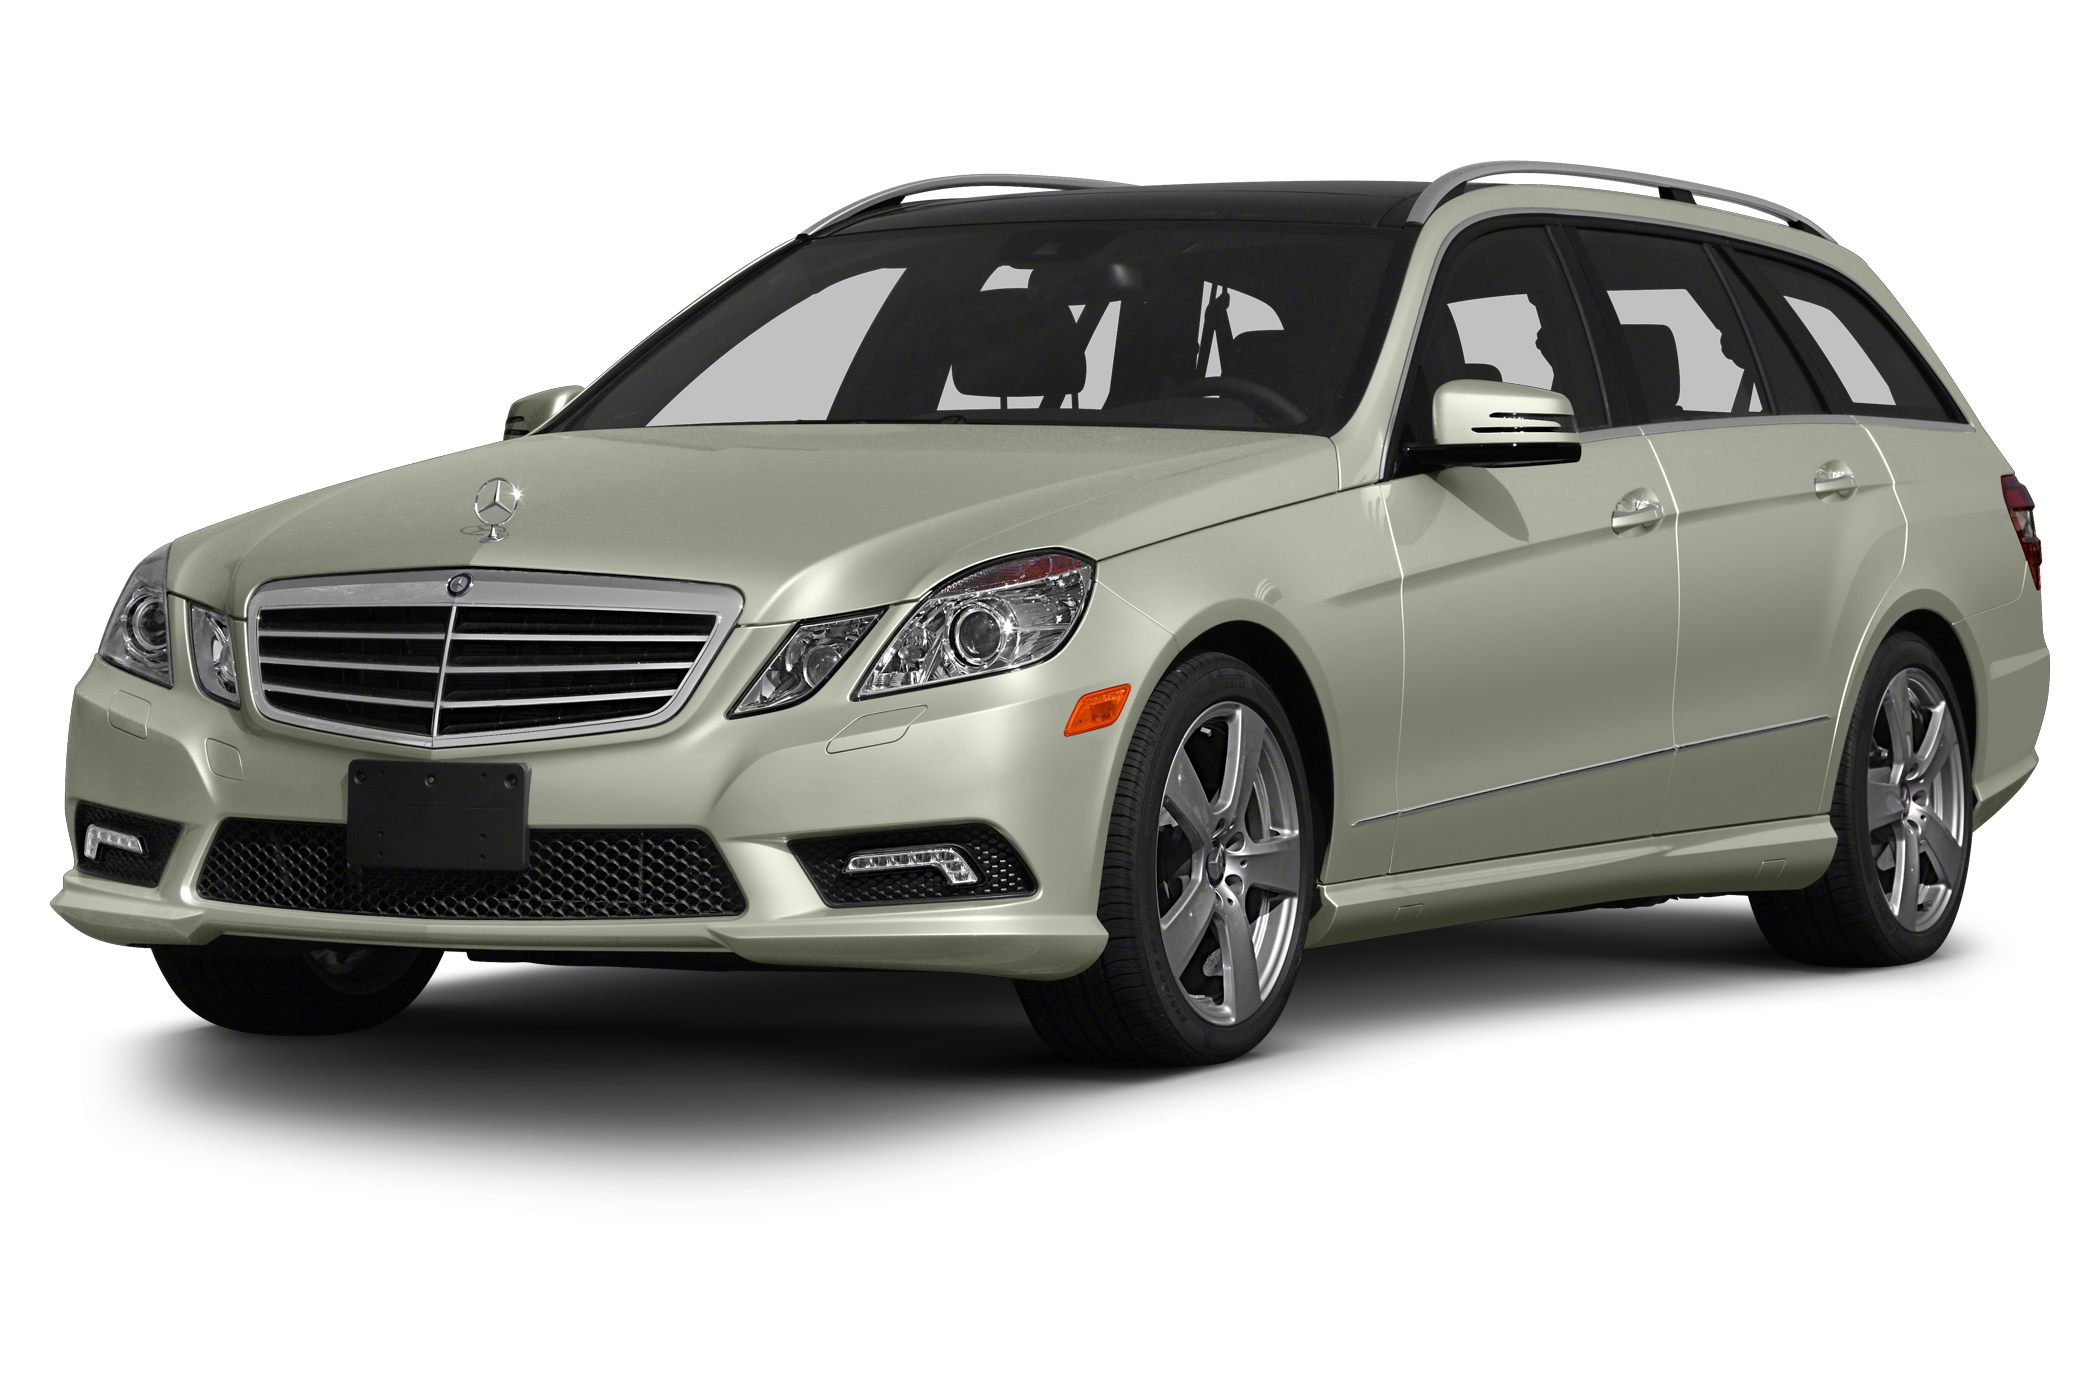 2013 Mercedes-Benz E-Class E350 4MATIC Sedan for sale in Laurel for $35,097 with 20,093 miles.